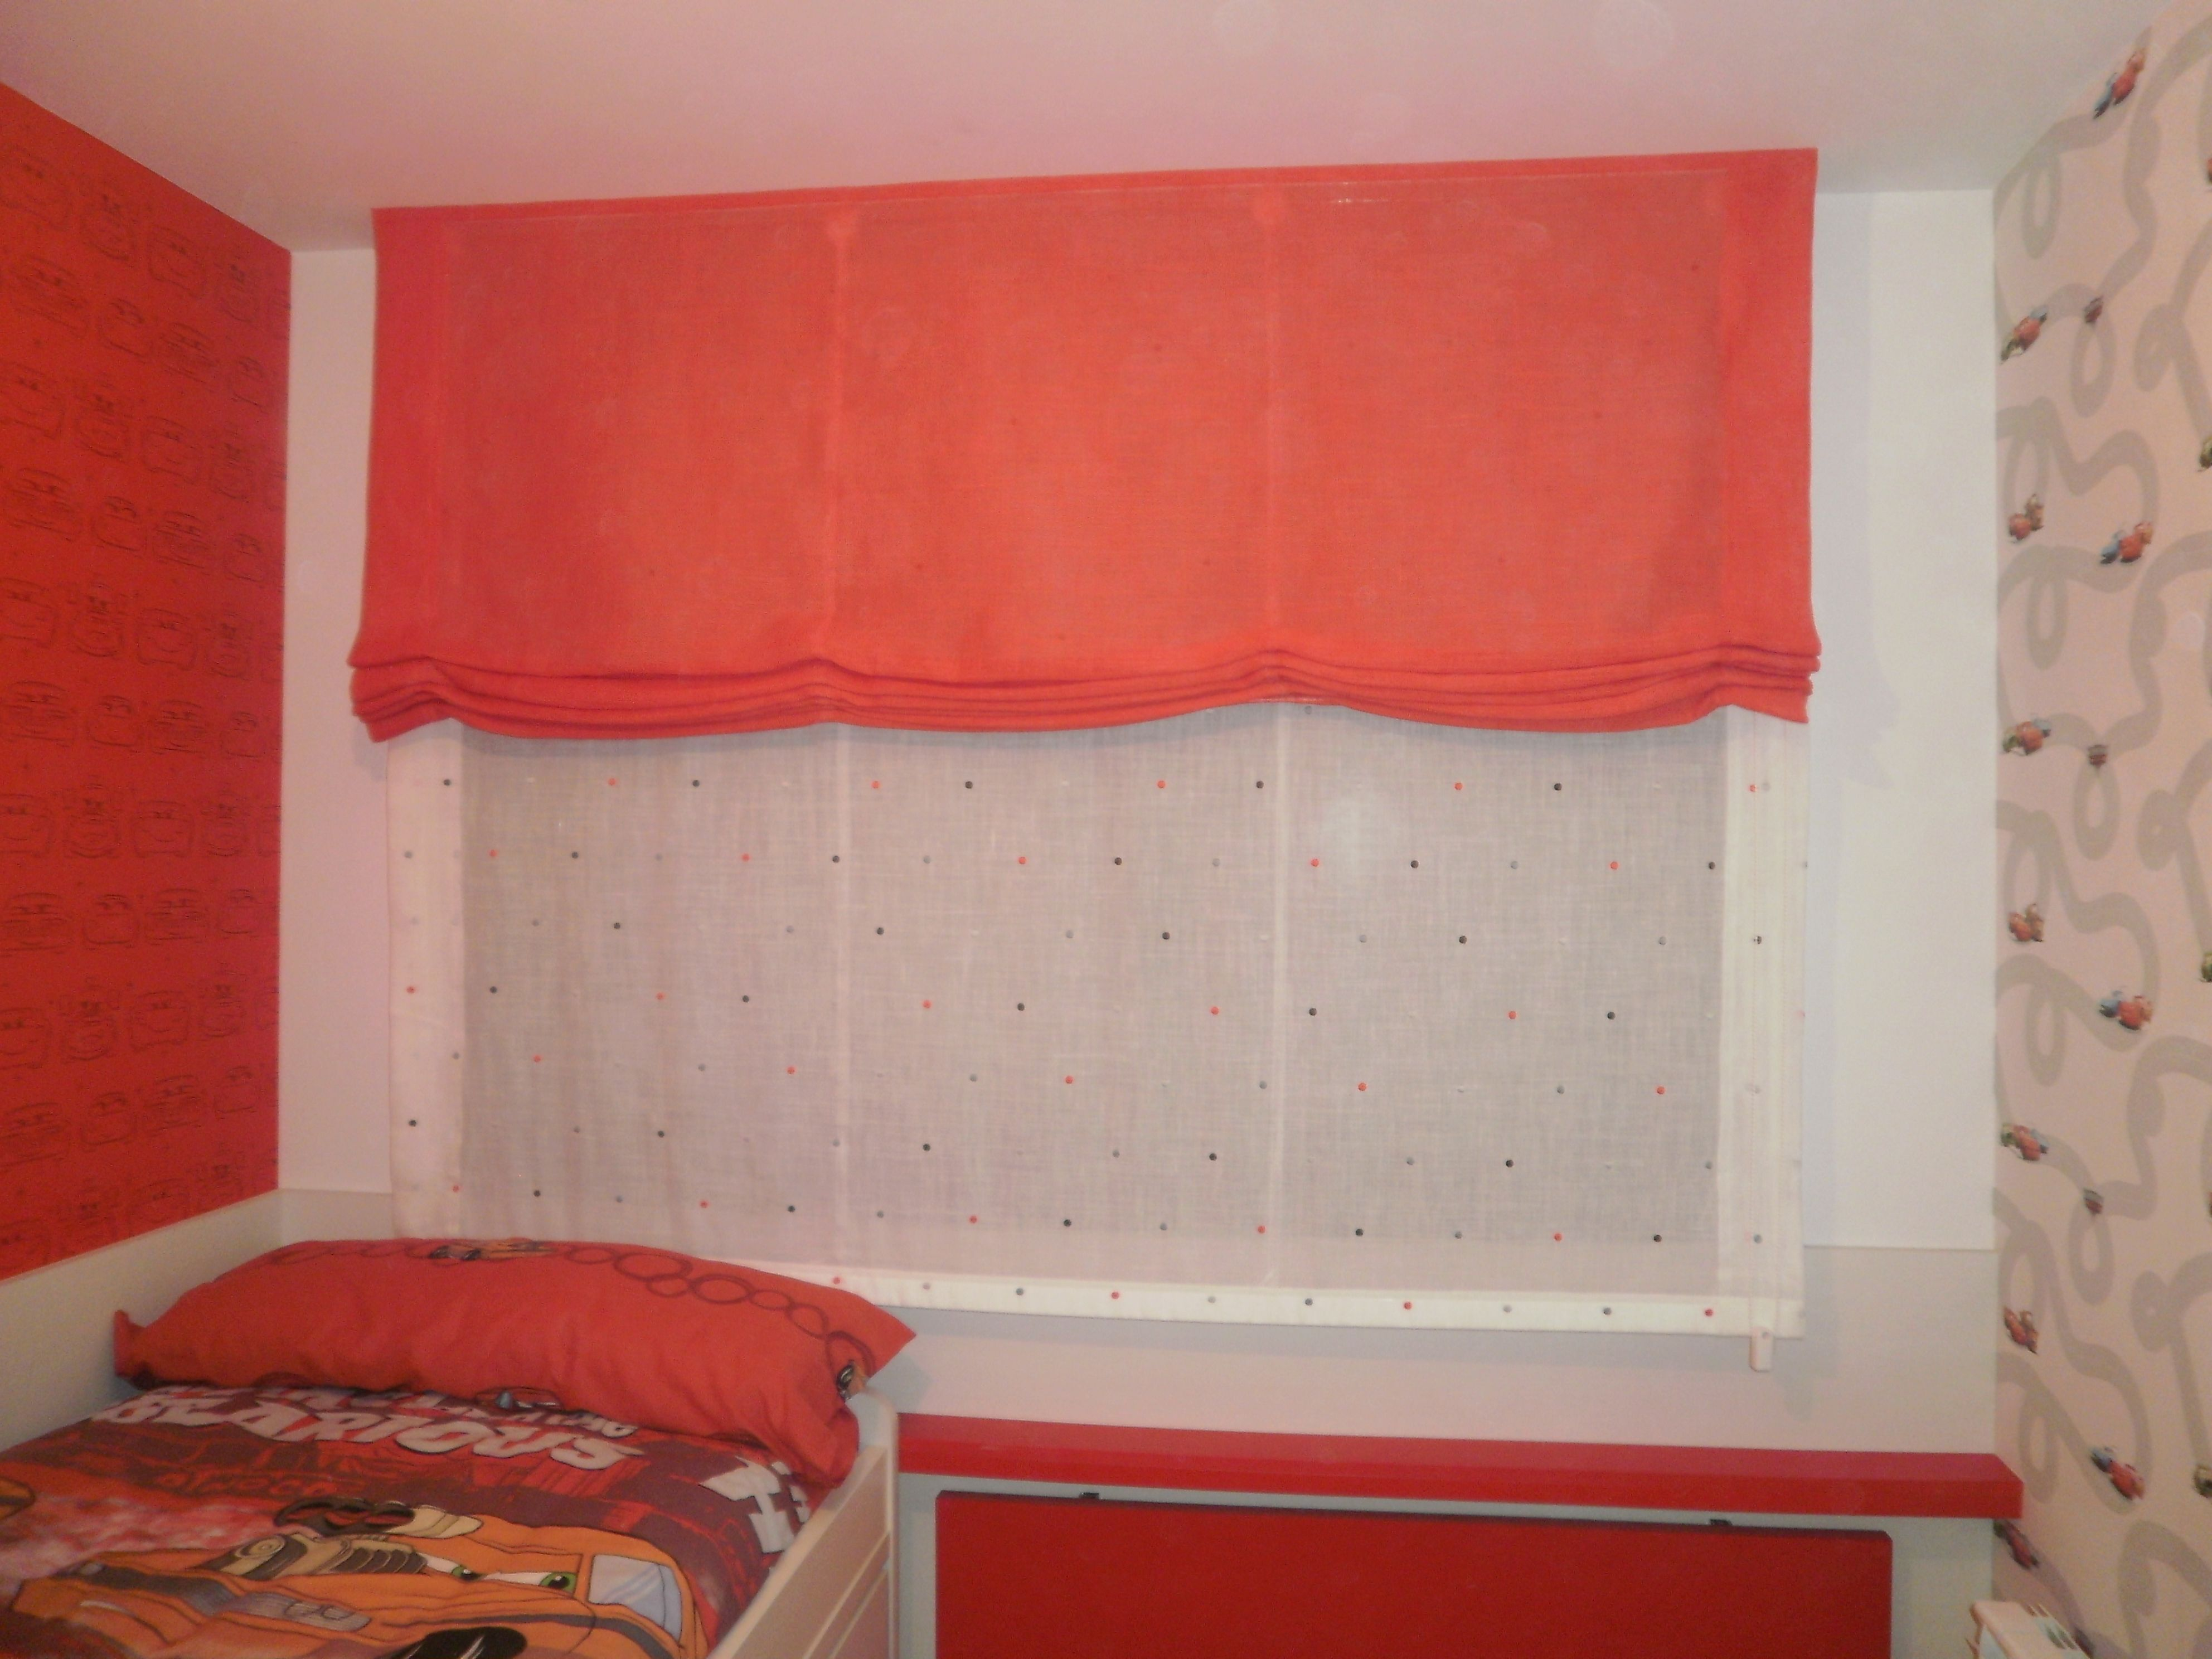 Dobles estores para habitaci n juvenil sol curtains for Cortinas habitacion juvenil